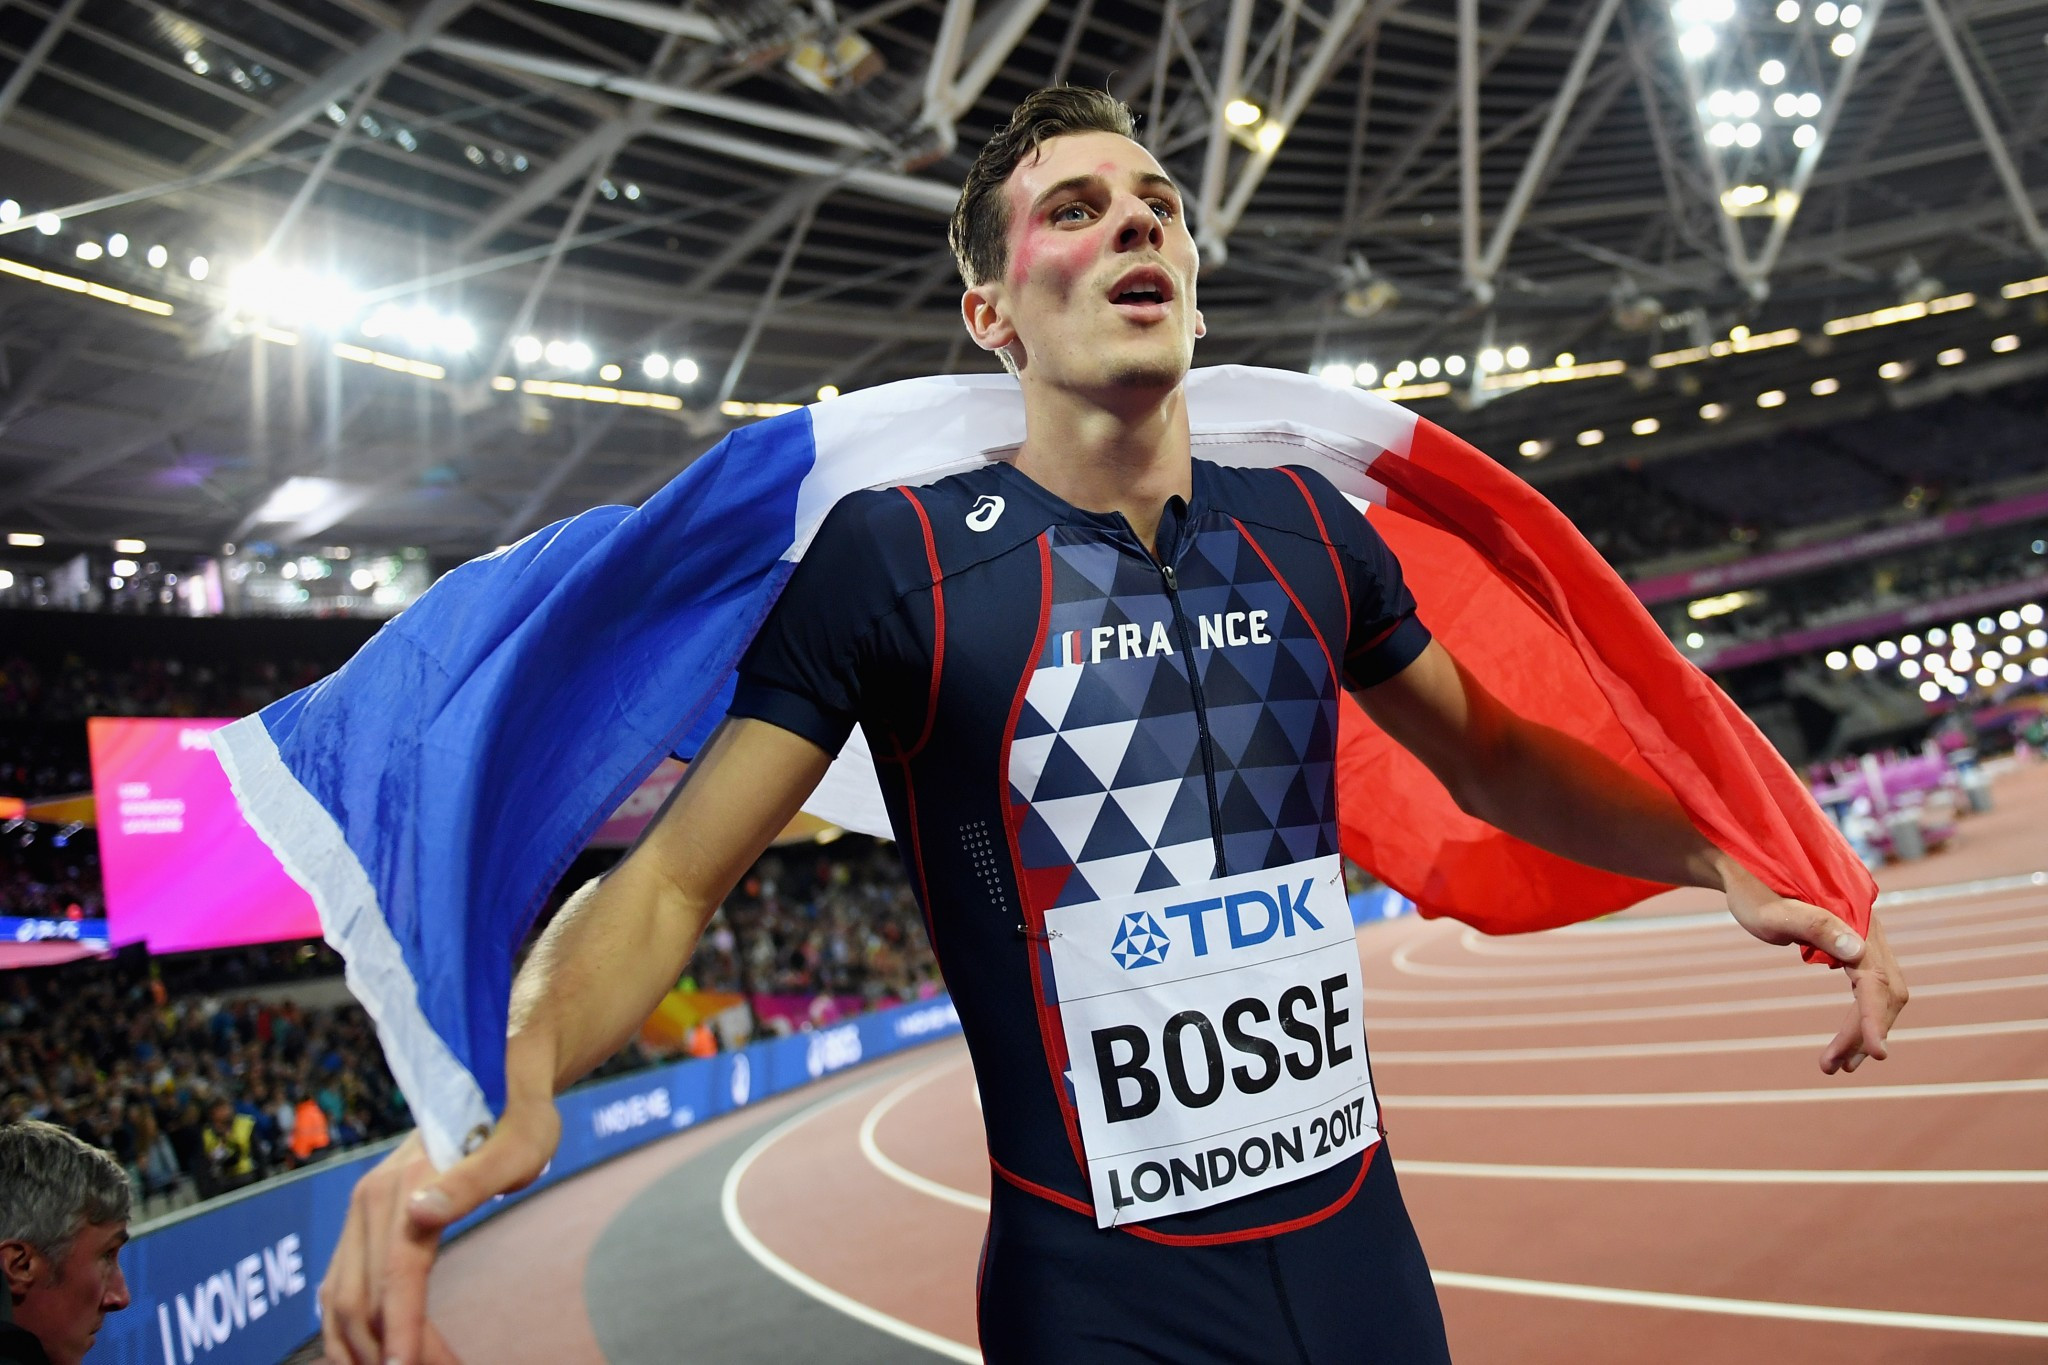 Bosse produces 800m shock as van Niekerk bosses over one lap at IAAF World Championships